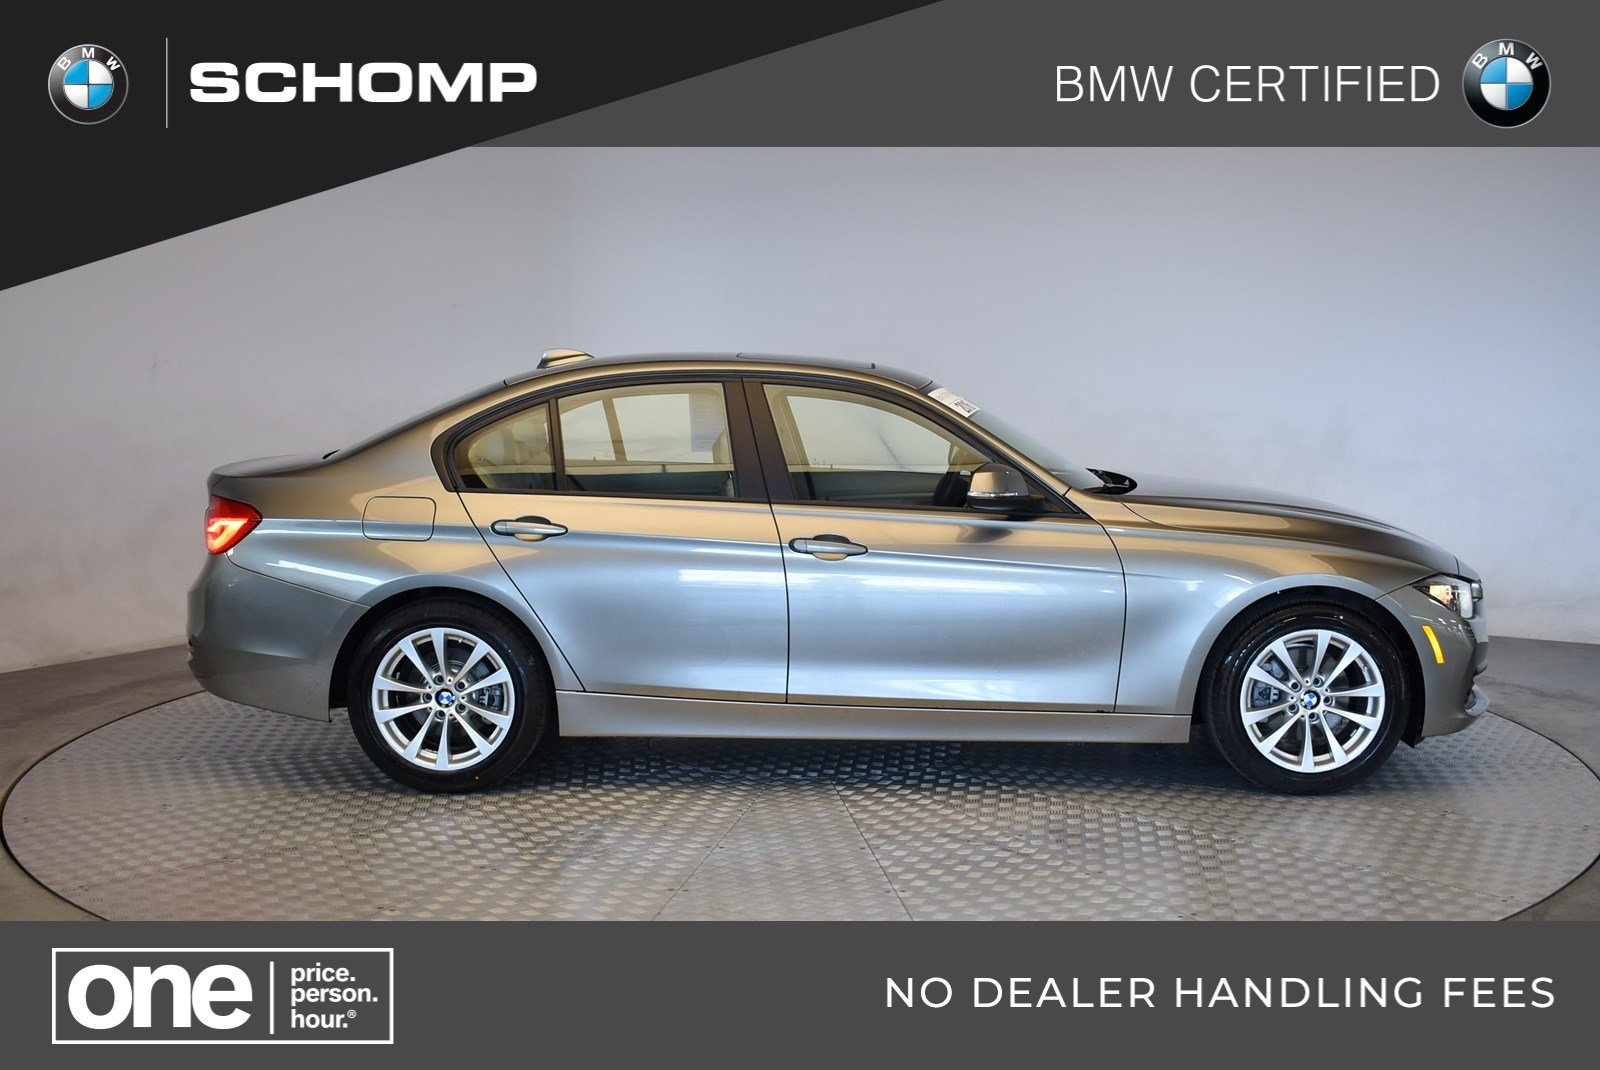 Certified Pre Owned Bmw >> Certified Pre Owned 2016 Bmw 3 Series 320i Xdrive 4dr Car In